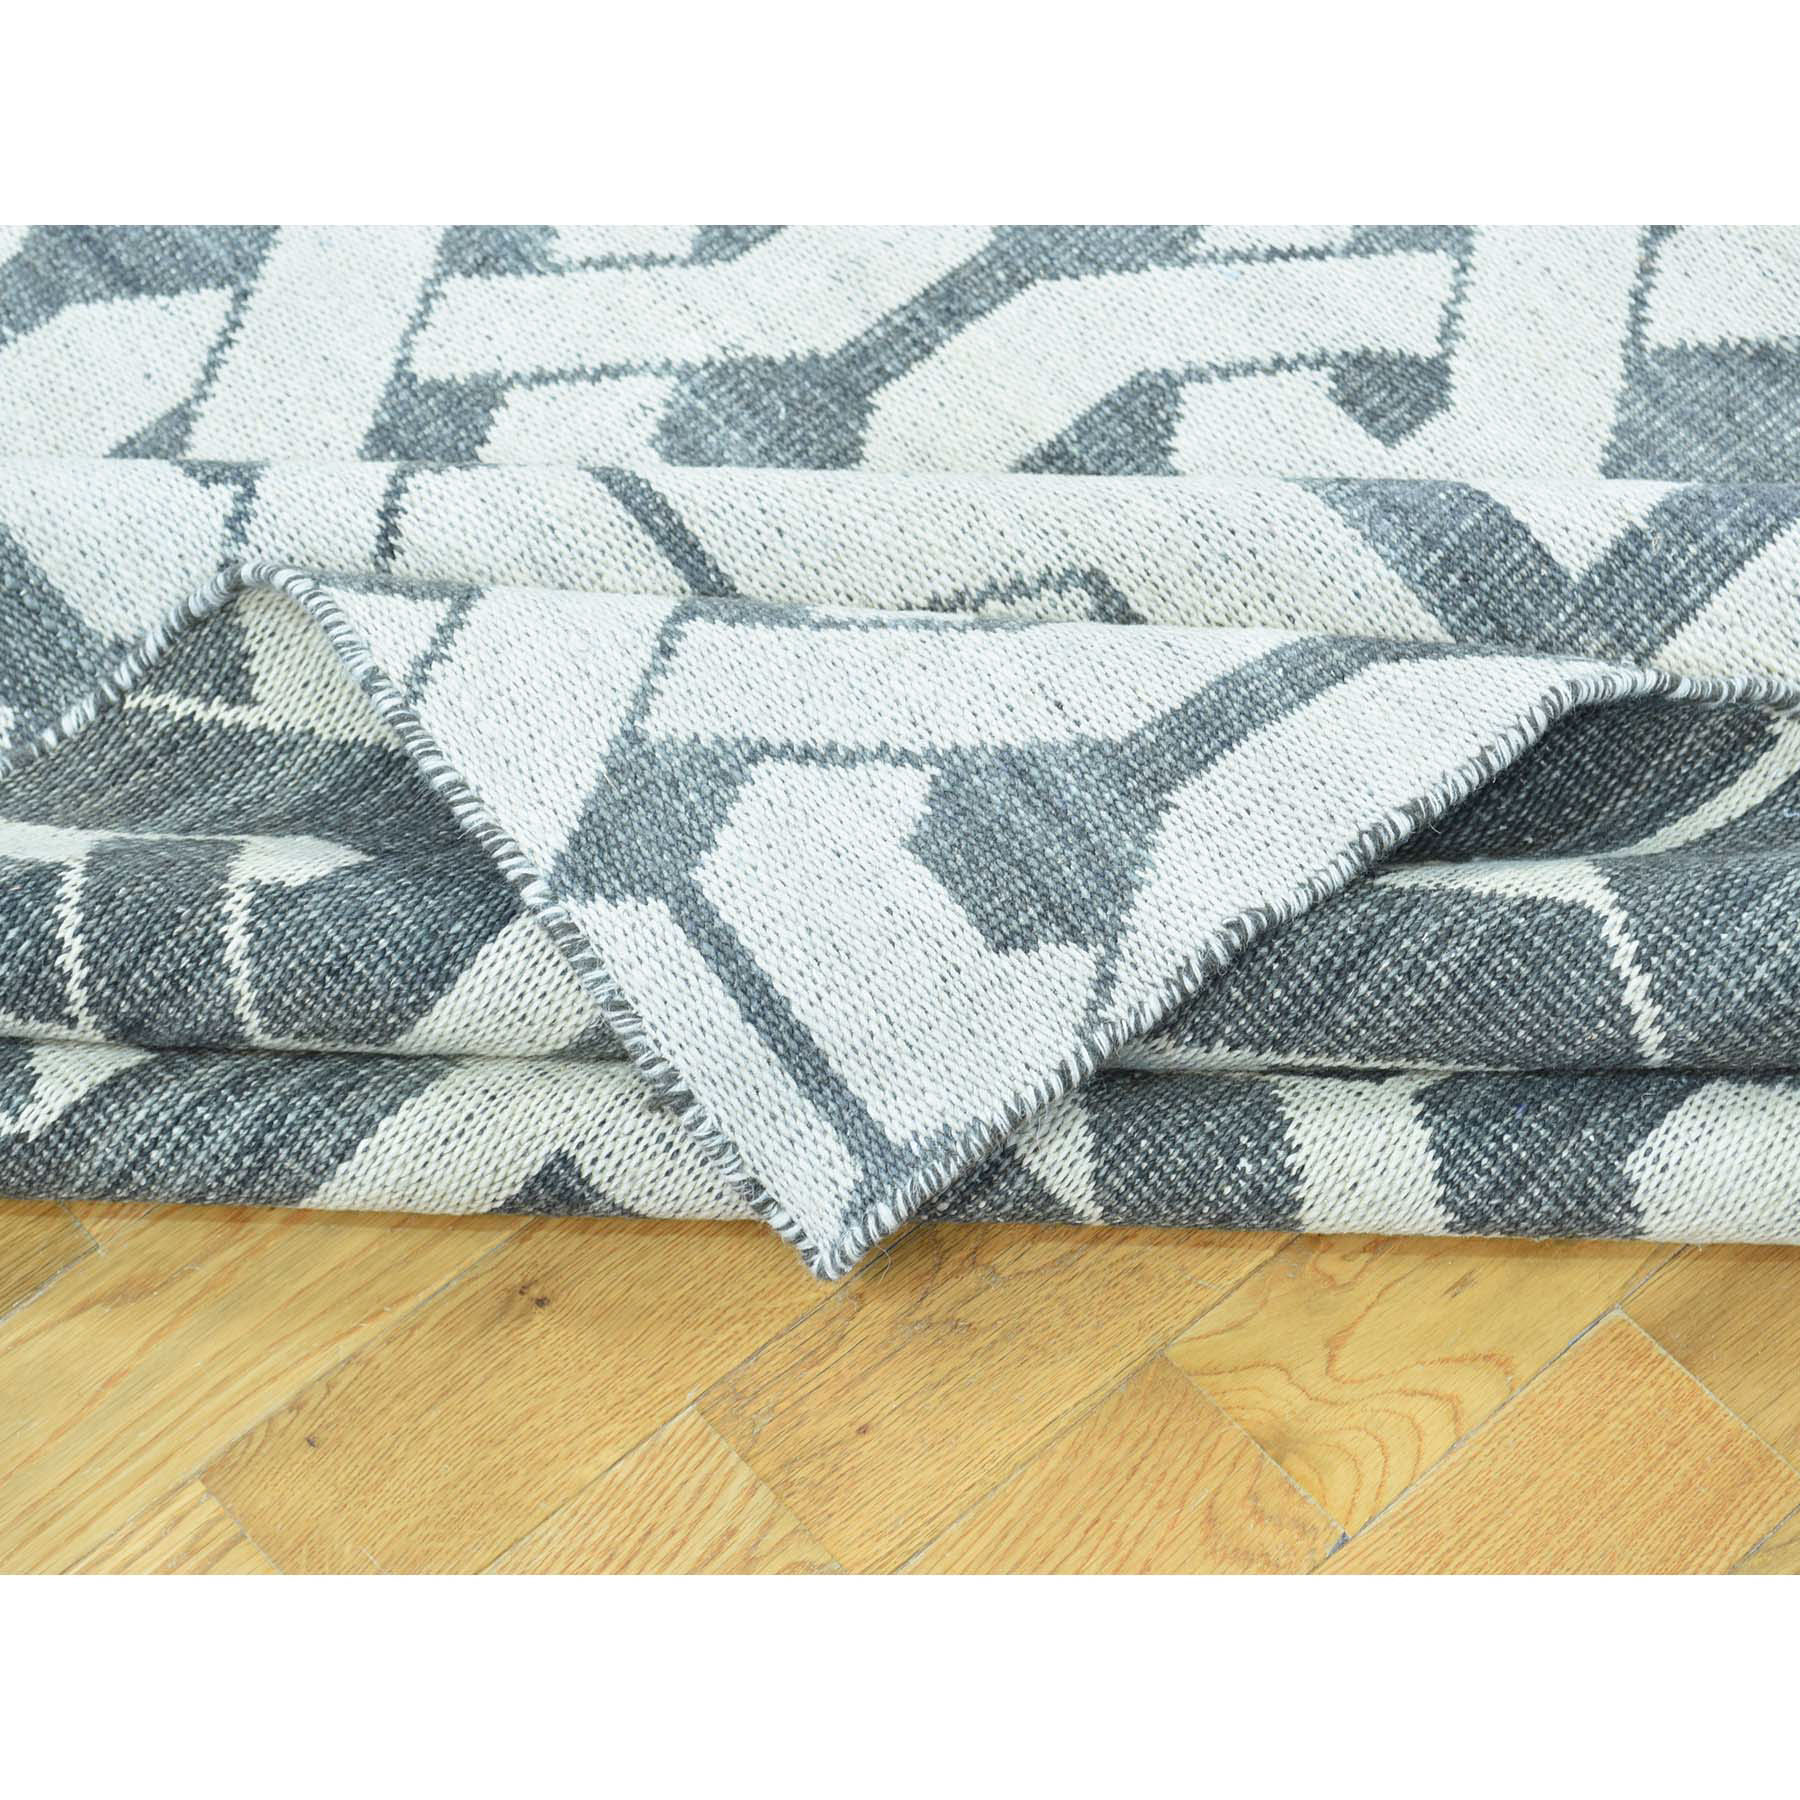 10-x13-10  Hand Woven Flat Weave Durie Kilim Reversible Oriental Rug